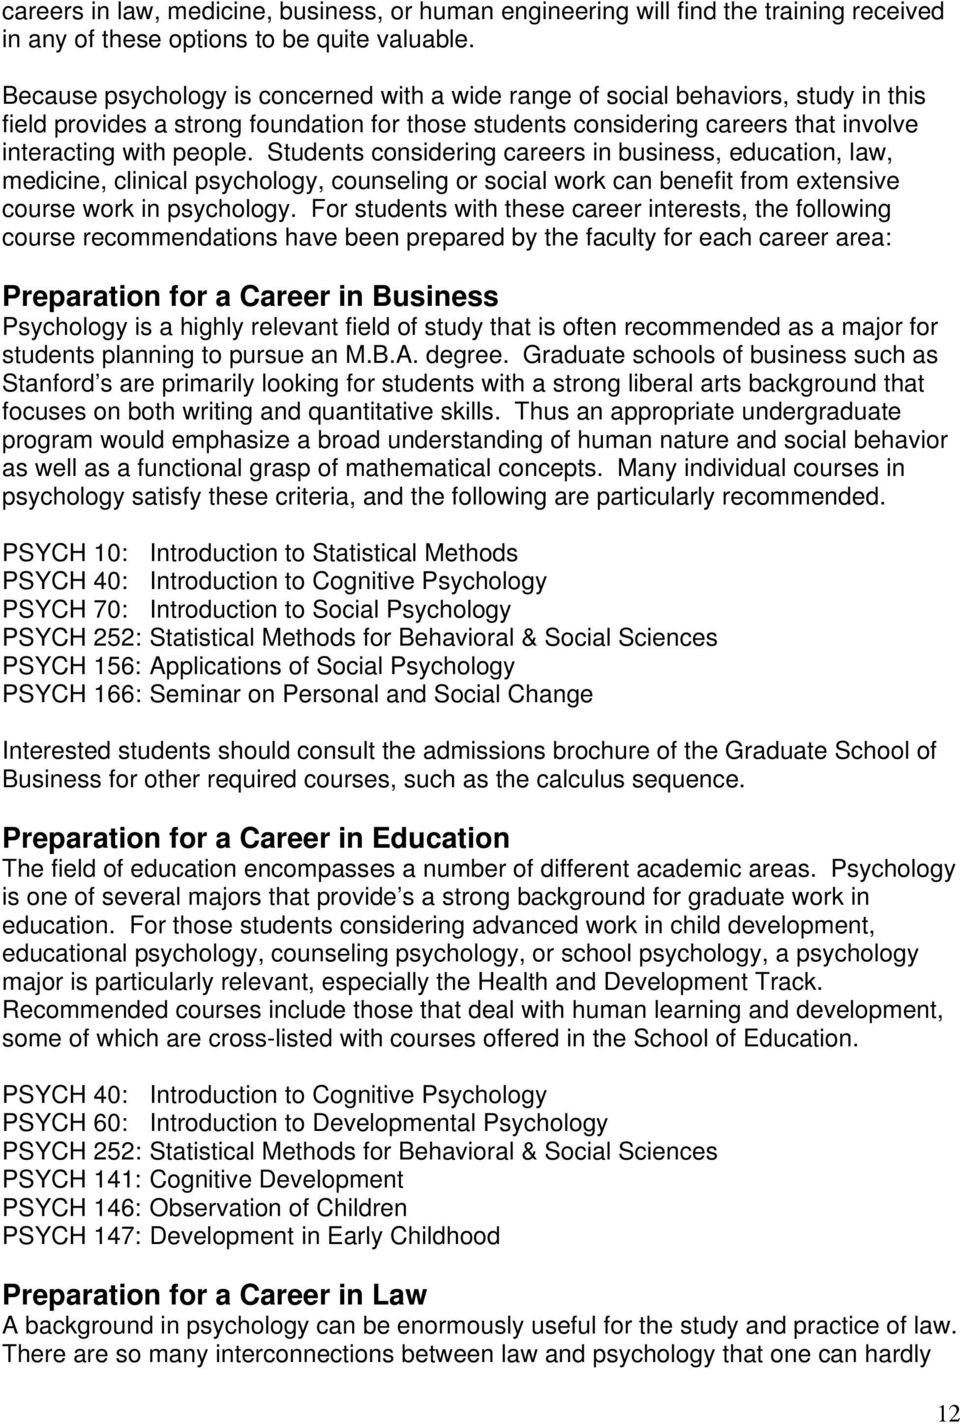 Students considering careers in business, education, law, medicine, clinical psychology, counseling or social work can benefit from extensive course work in psychology.